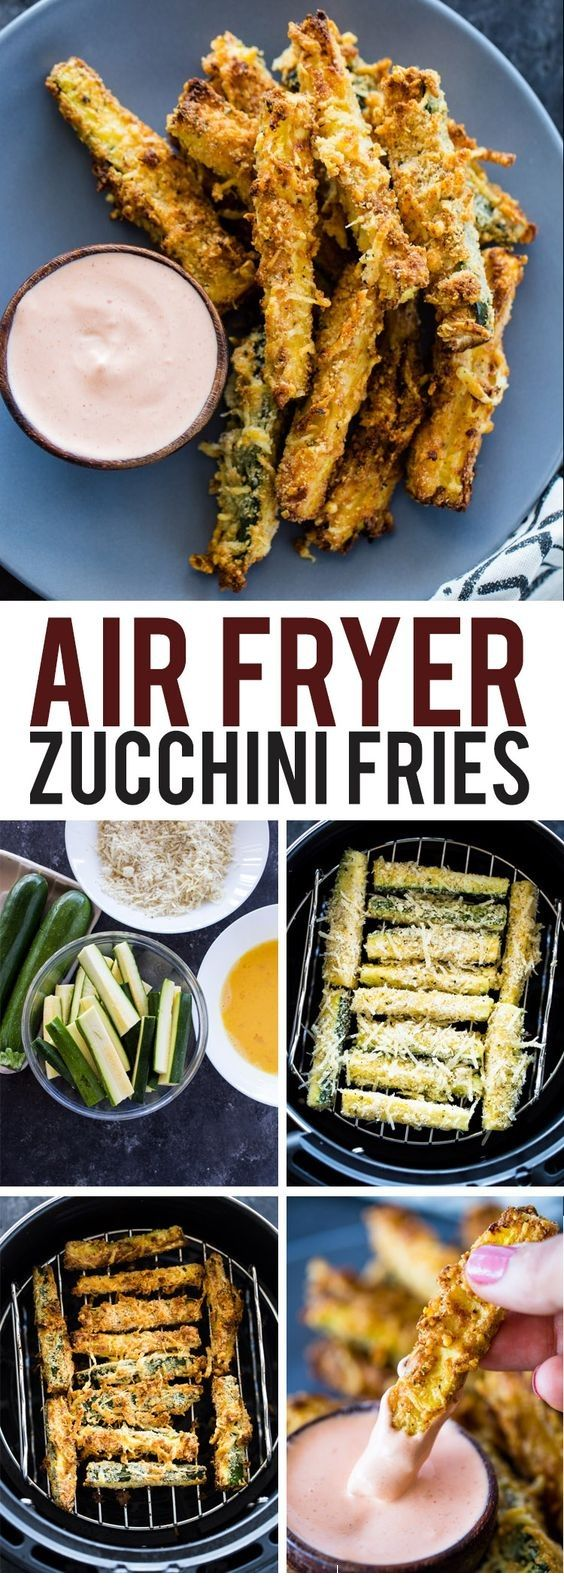 Air Fryer Zucchini Fries Crispy parmesan zucchini fries baked in the air fryer. …